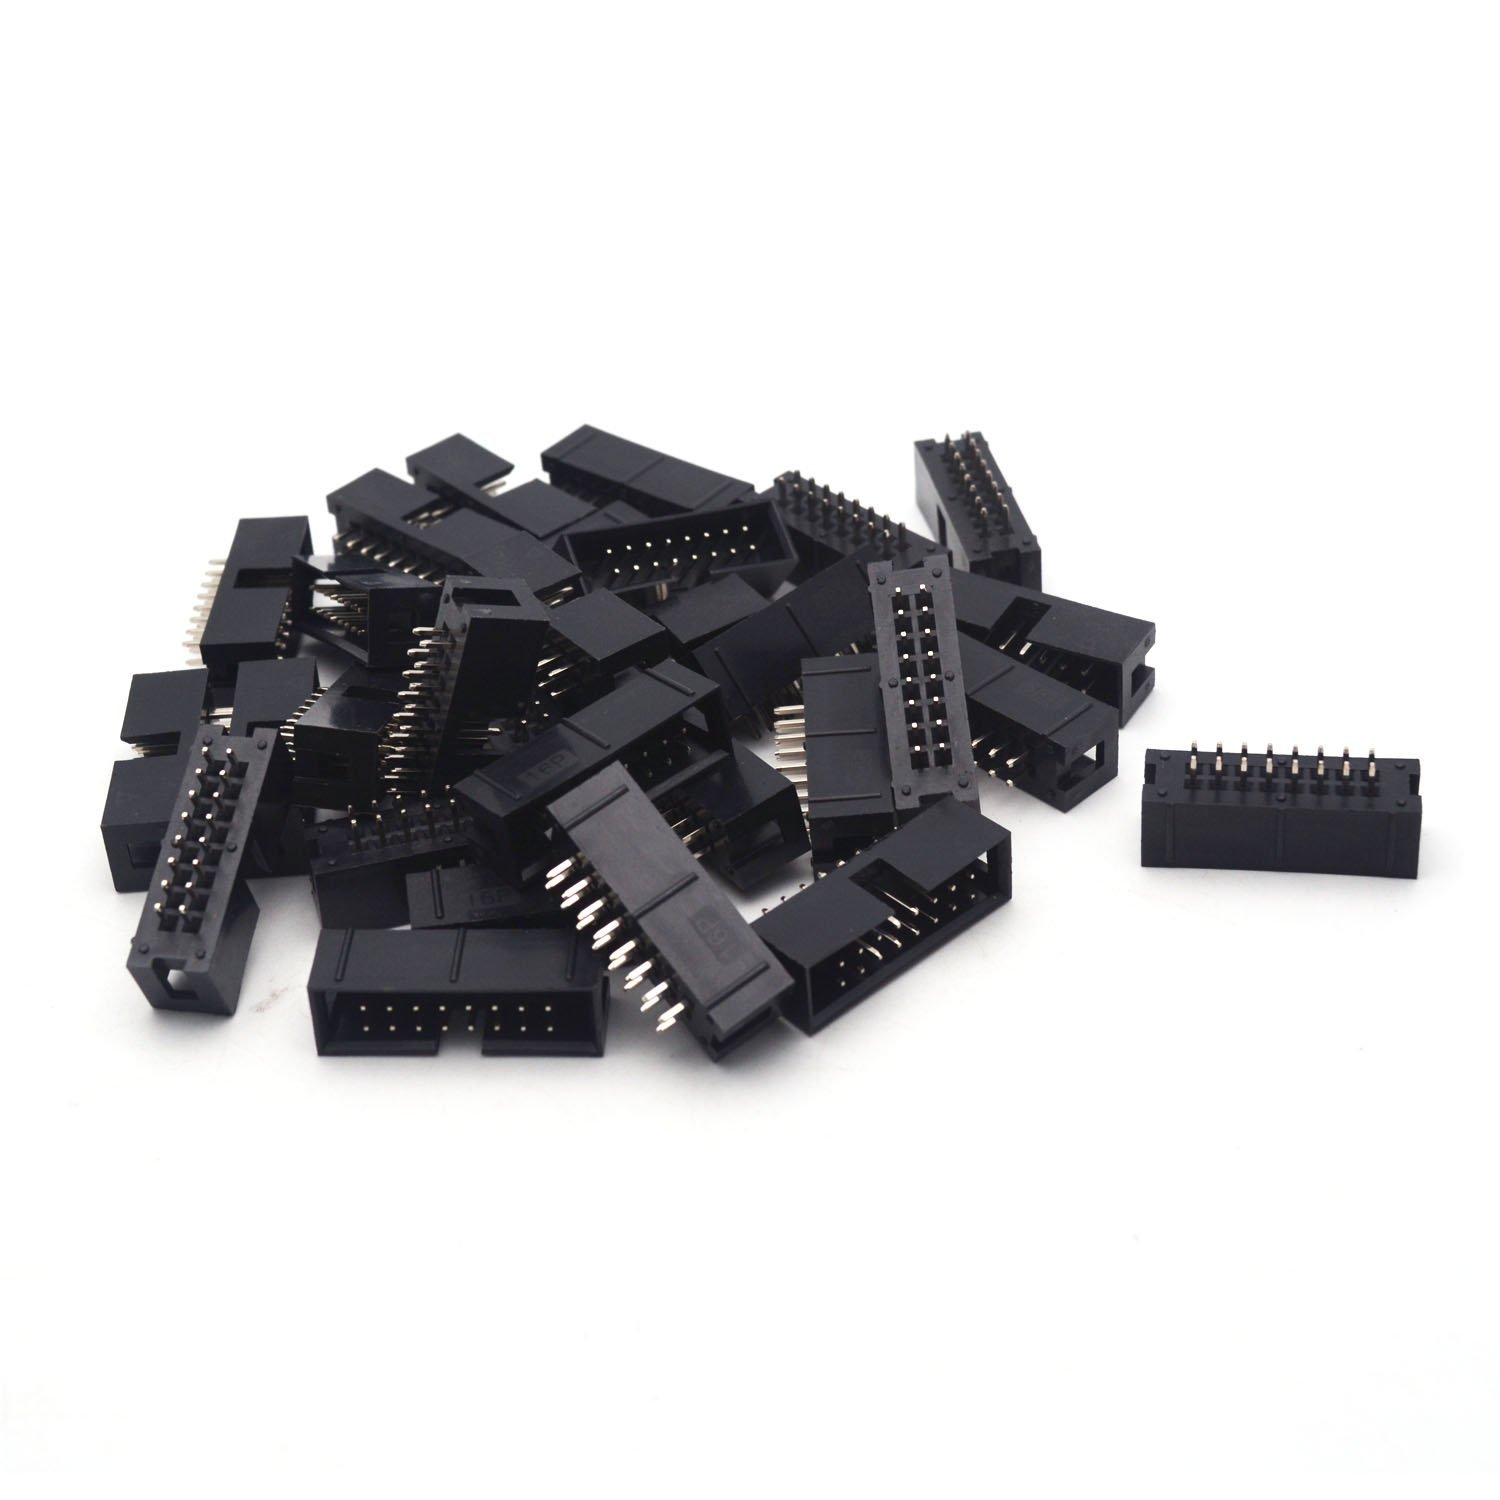 Antrader 30PCS/Lot DC3 16 Pin 2 x 8Pin Double Row Pitch 2.54mm Double-spaced Straight Pin Male IDC Socket Box Header Connector